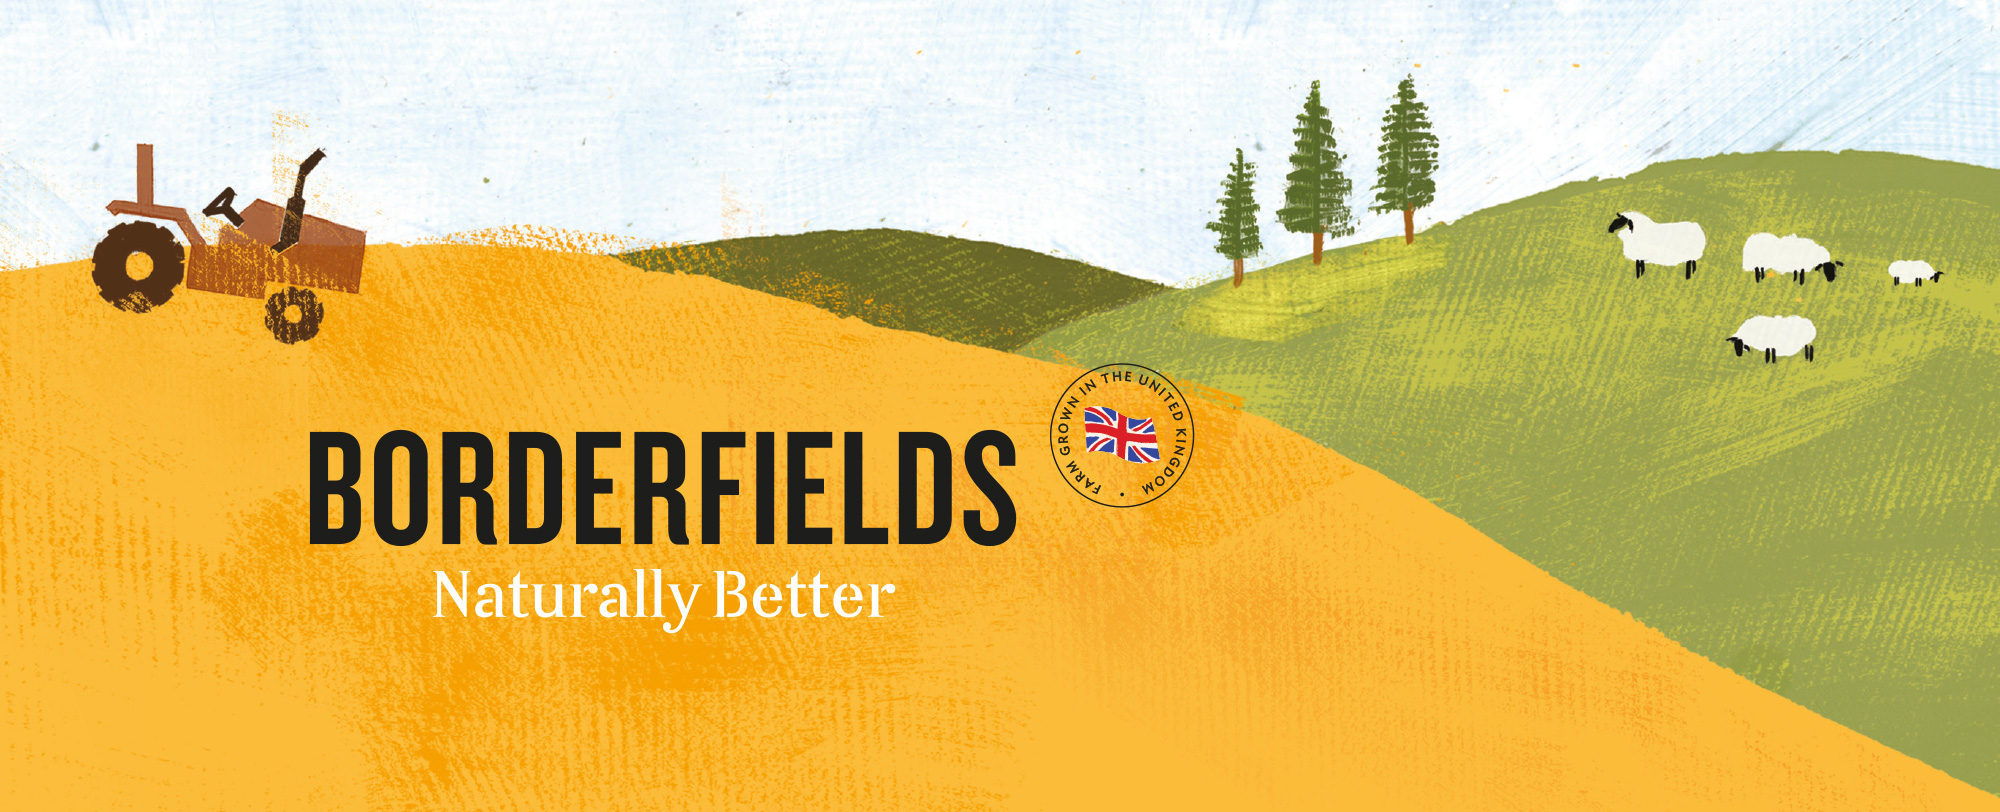 Borderfields-Home-banner-v2